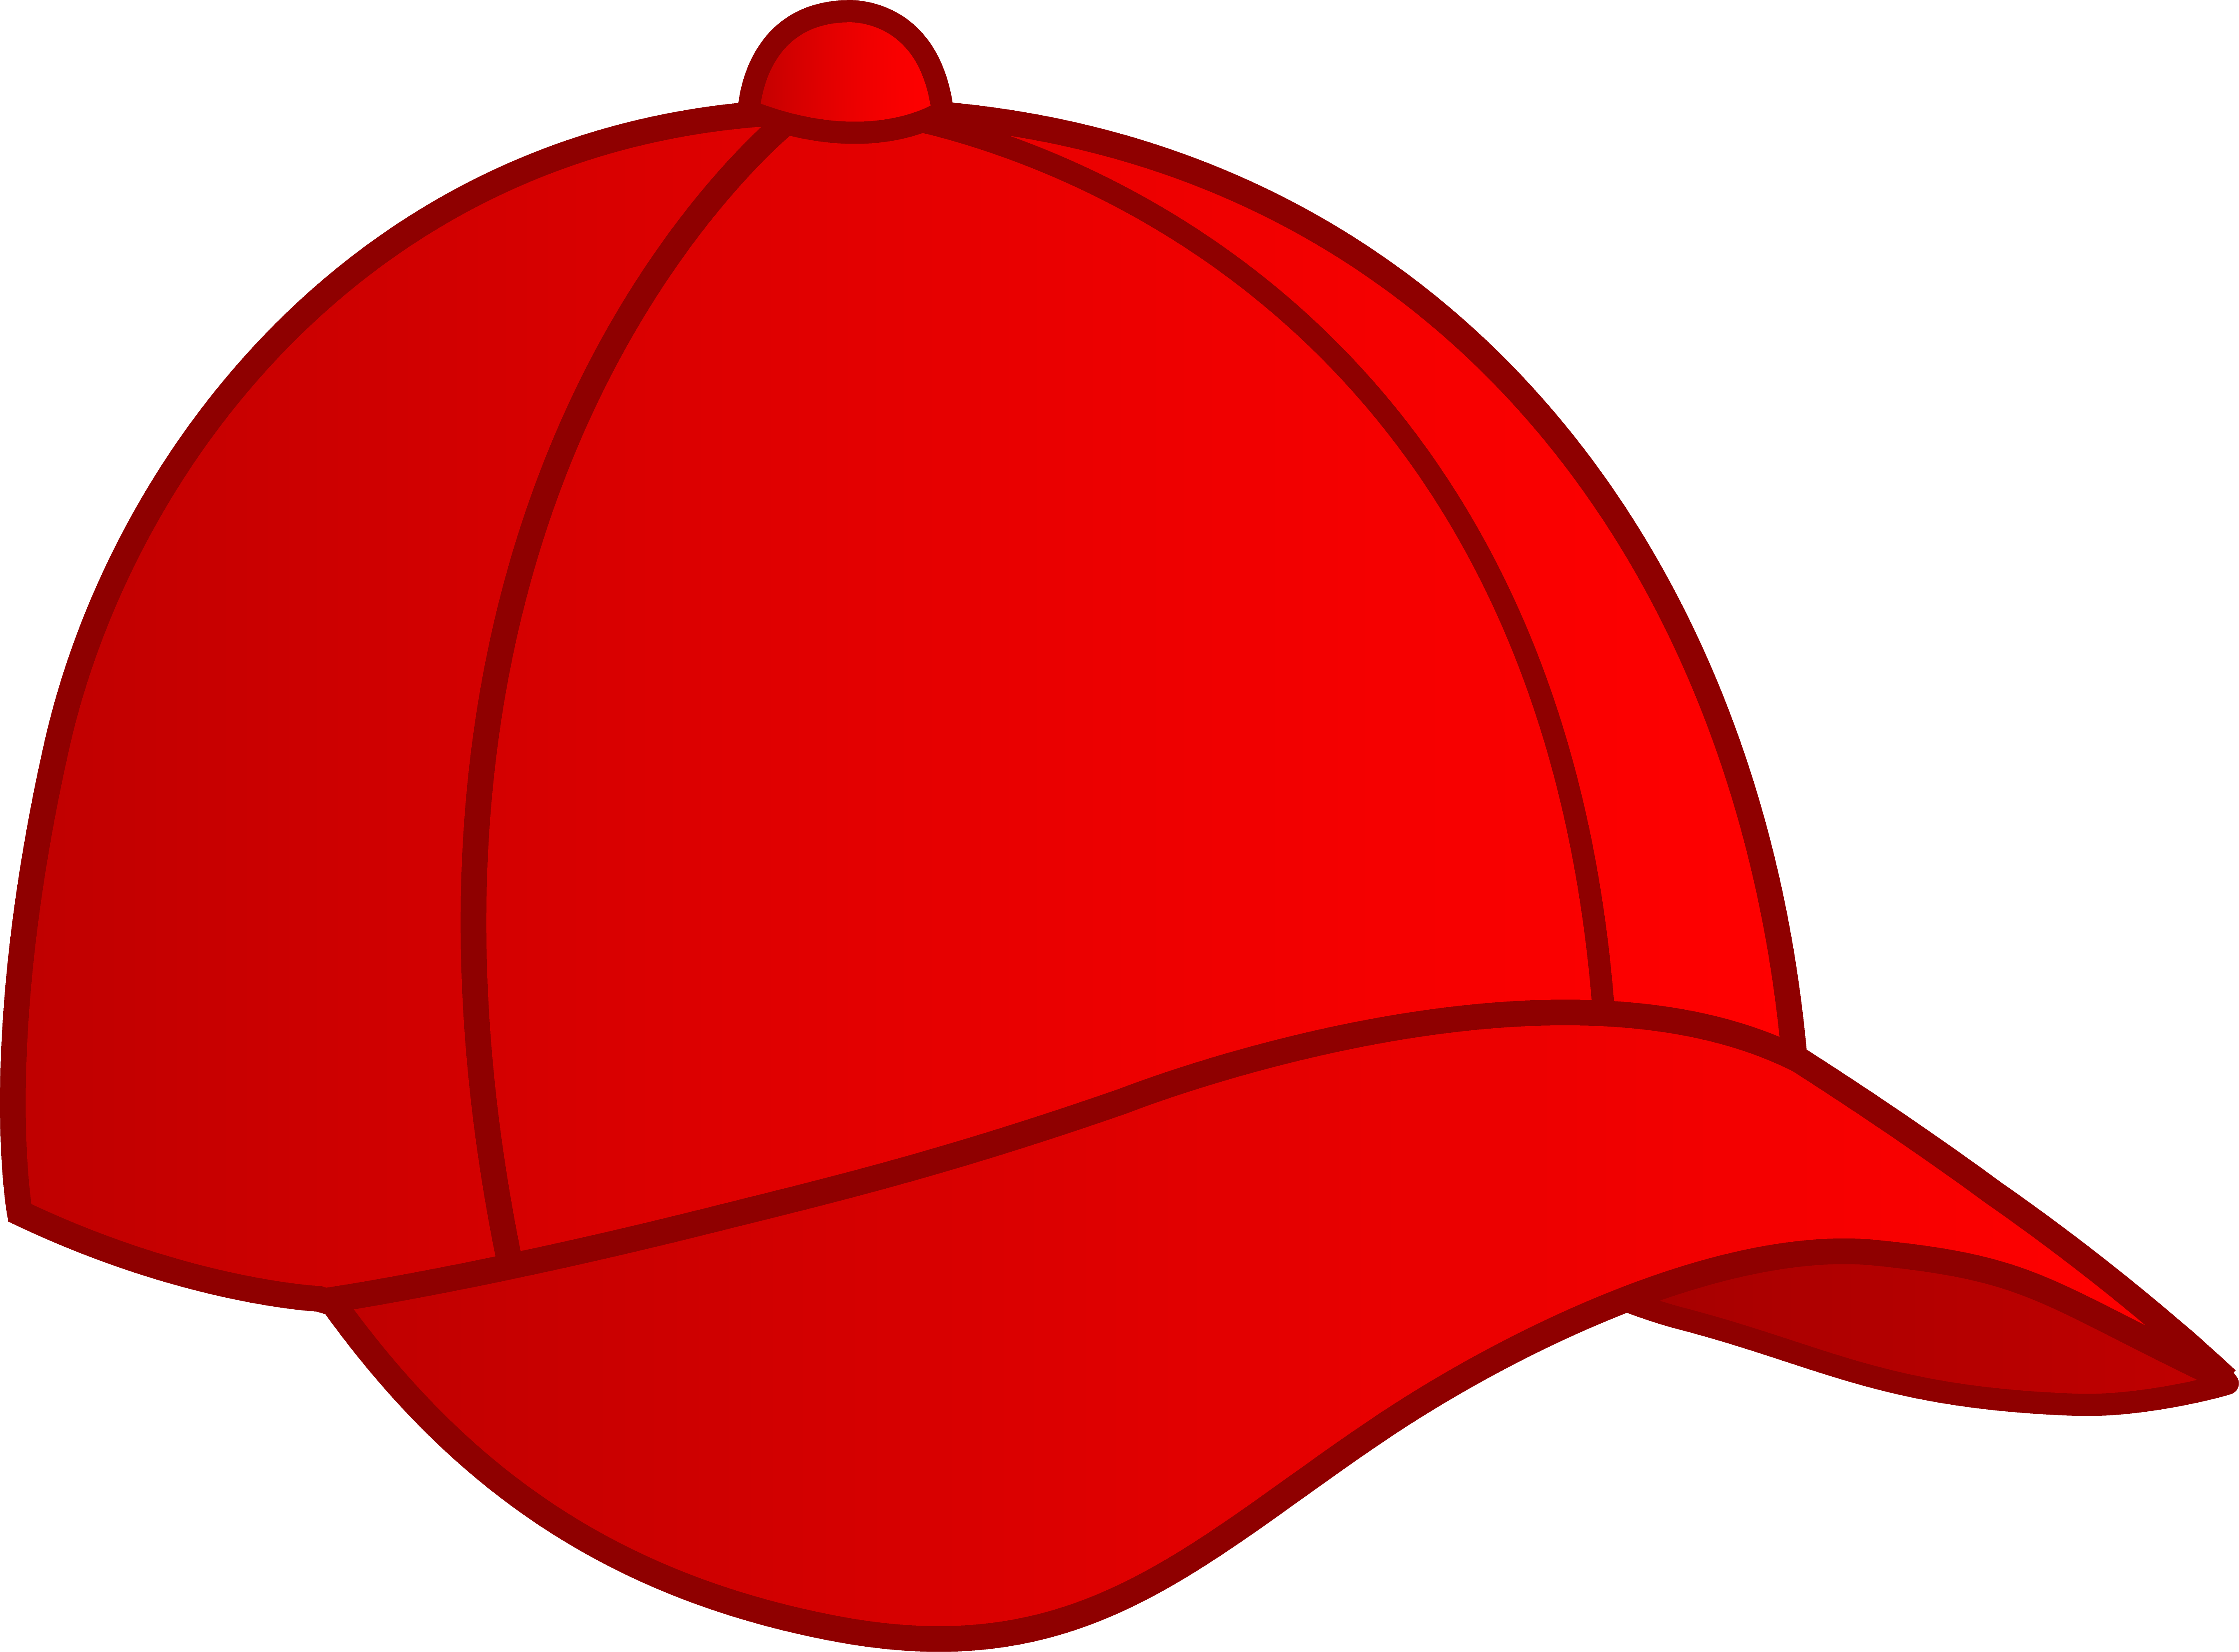 Red Baseball Cap Free clipart free image.